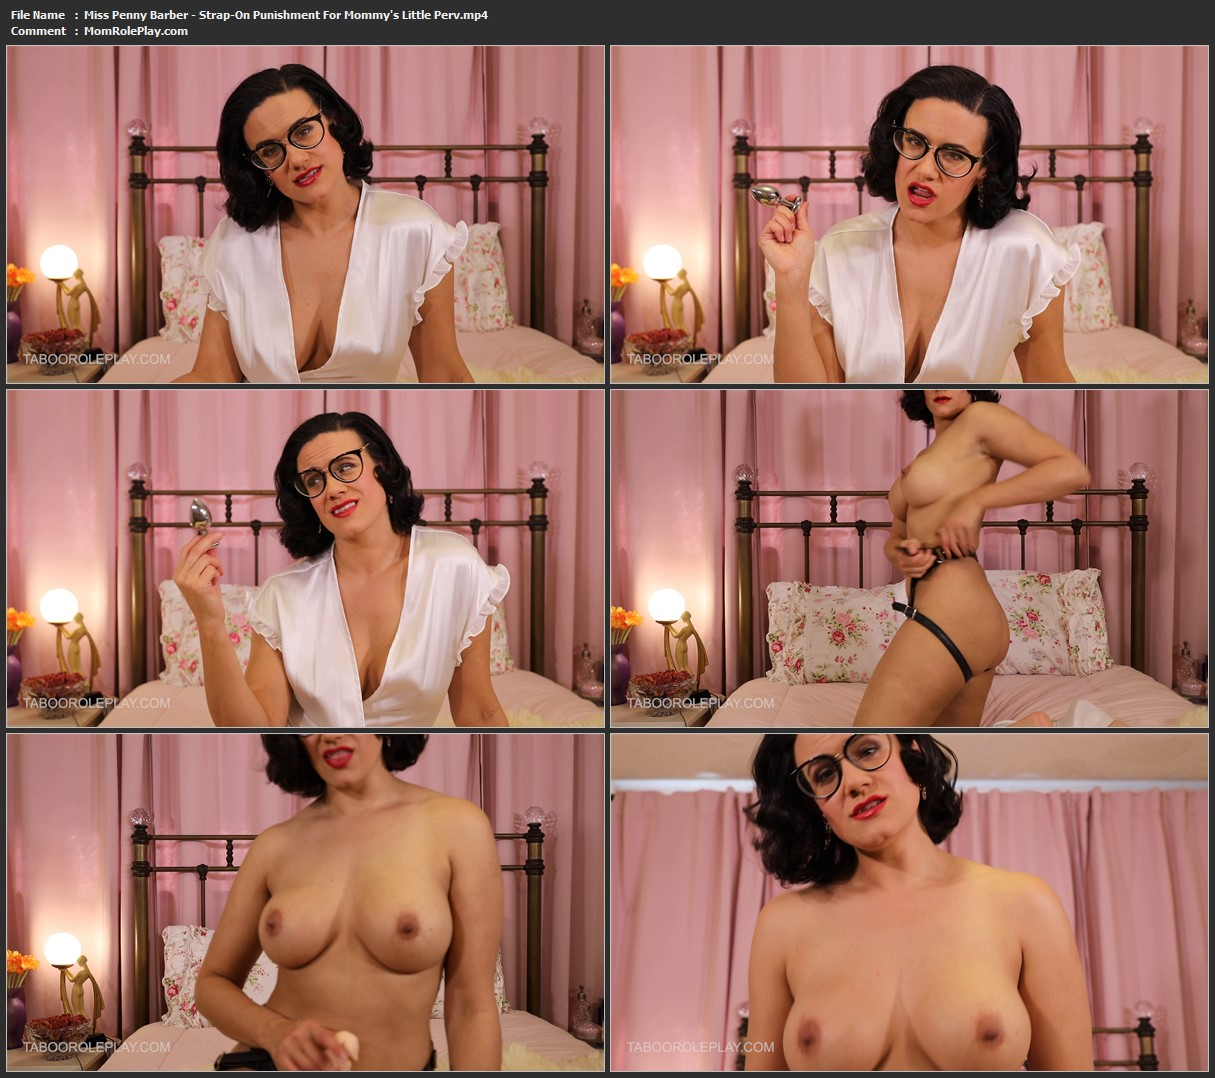 Miss Penny Barber - Strap-On Punishment For Mommy's Little Perv